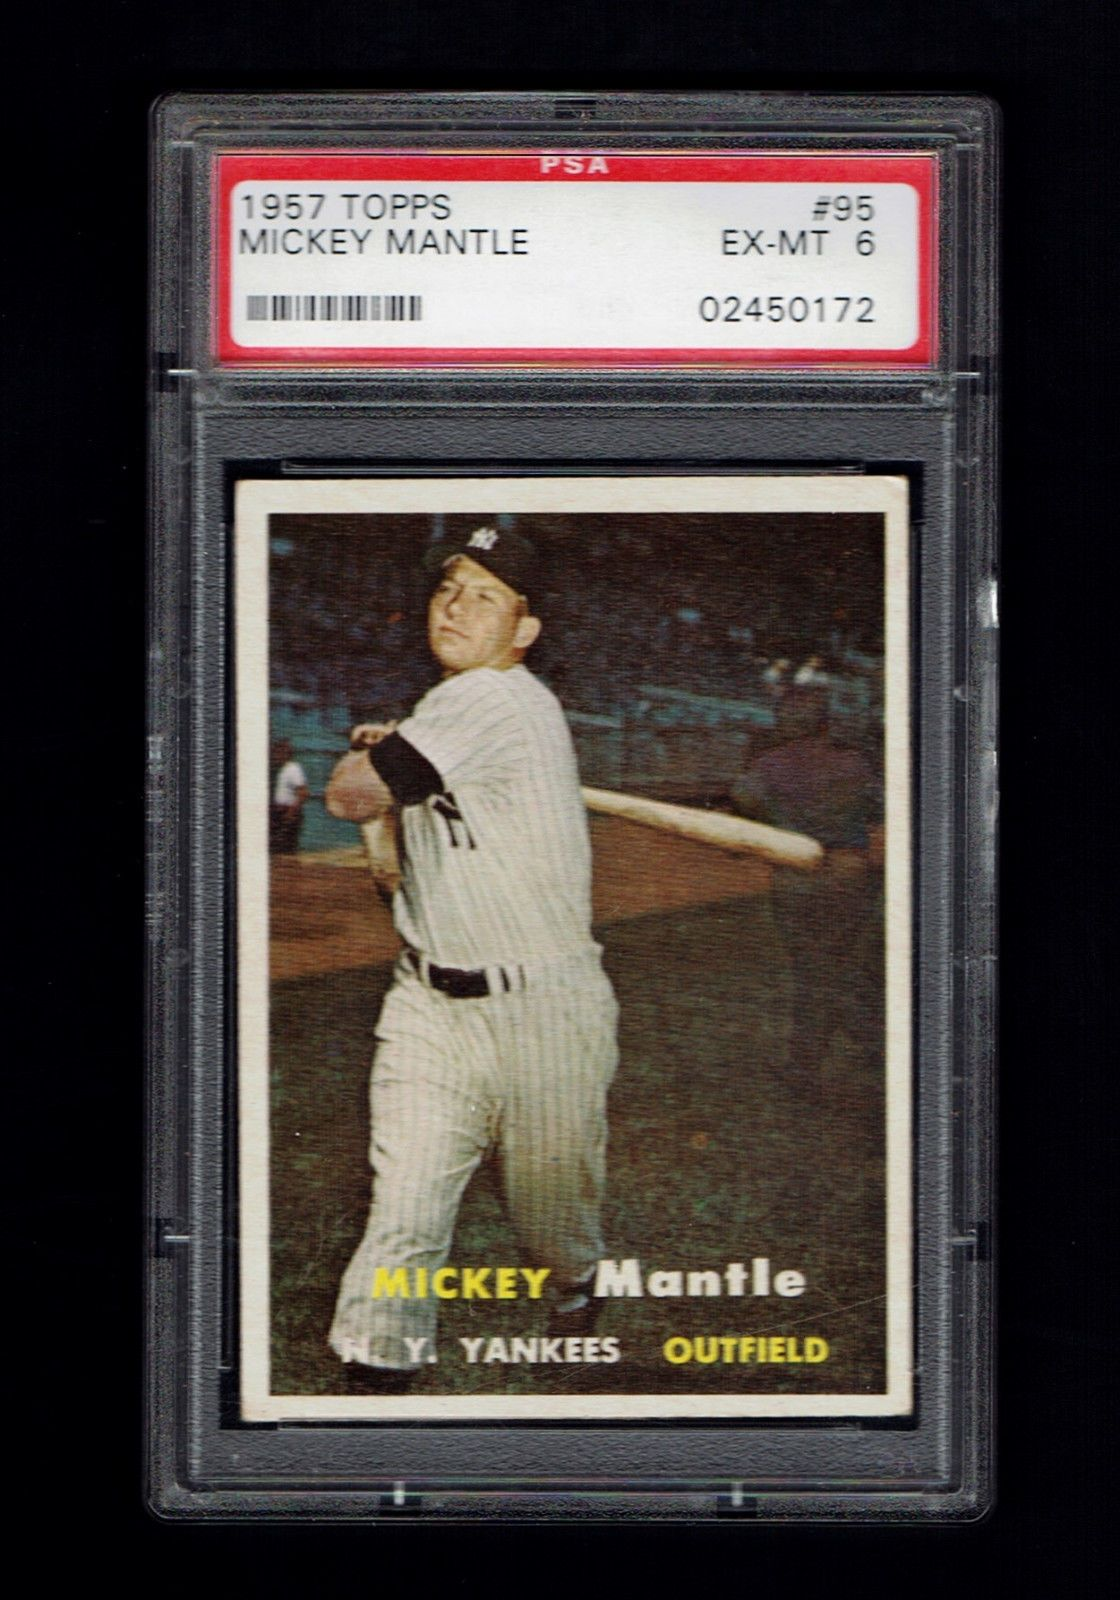 1957 Topps 95 Mickey Mantle PSA 6 Yankees MickeyMantle